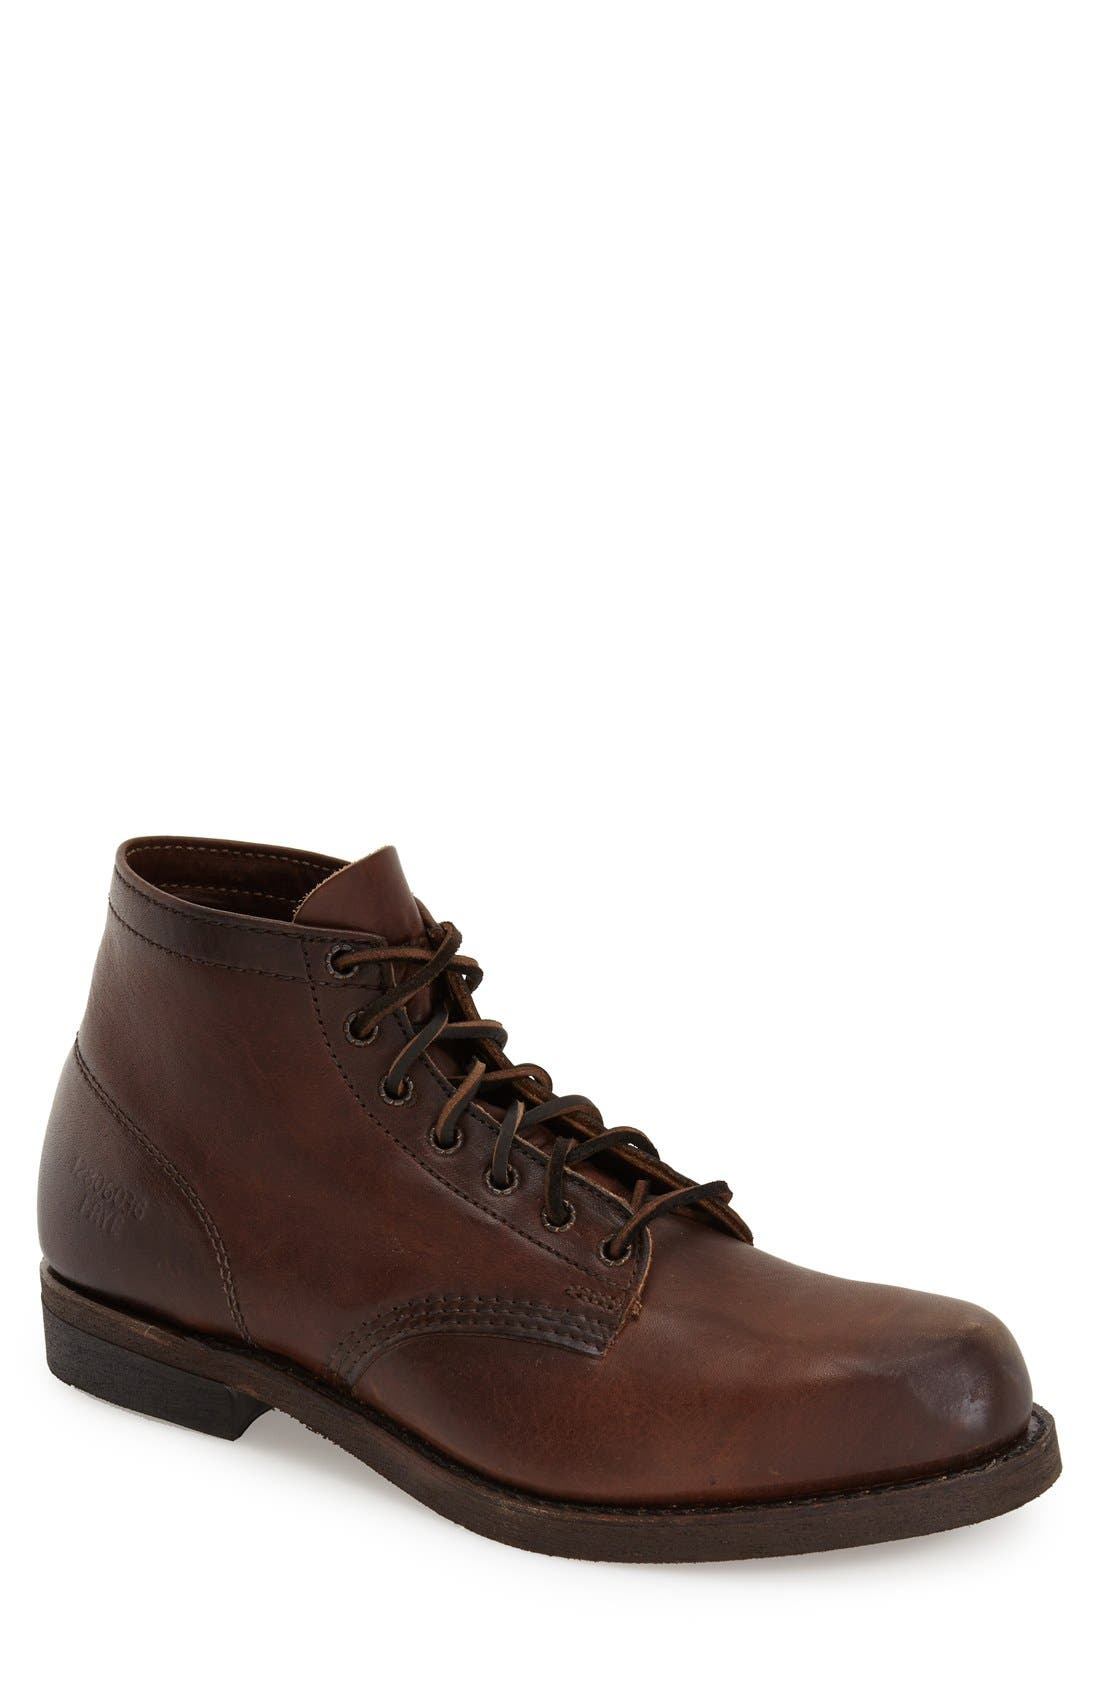 'Prison' Boot, Main, color, 207